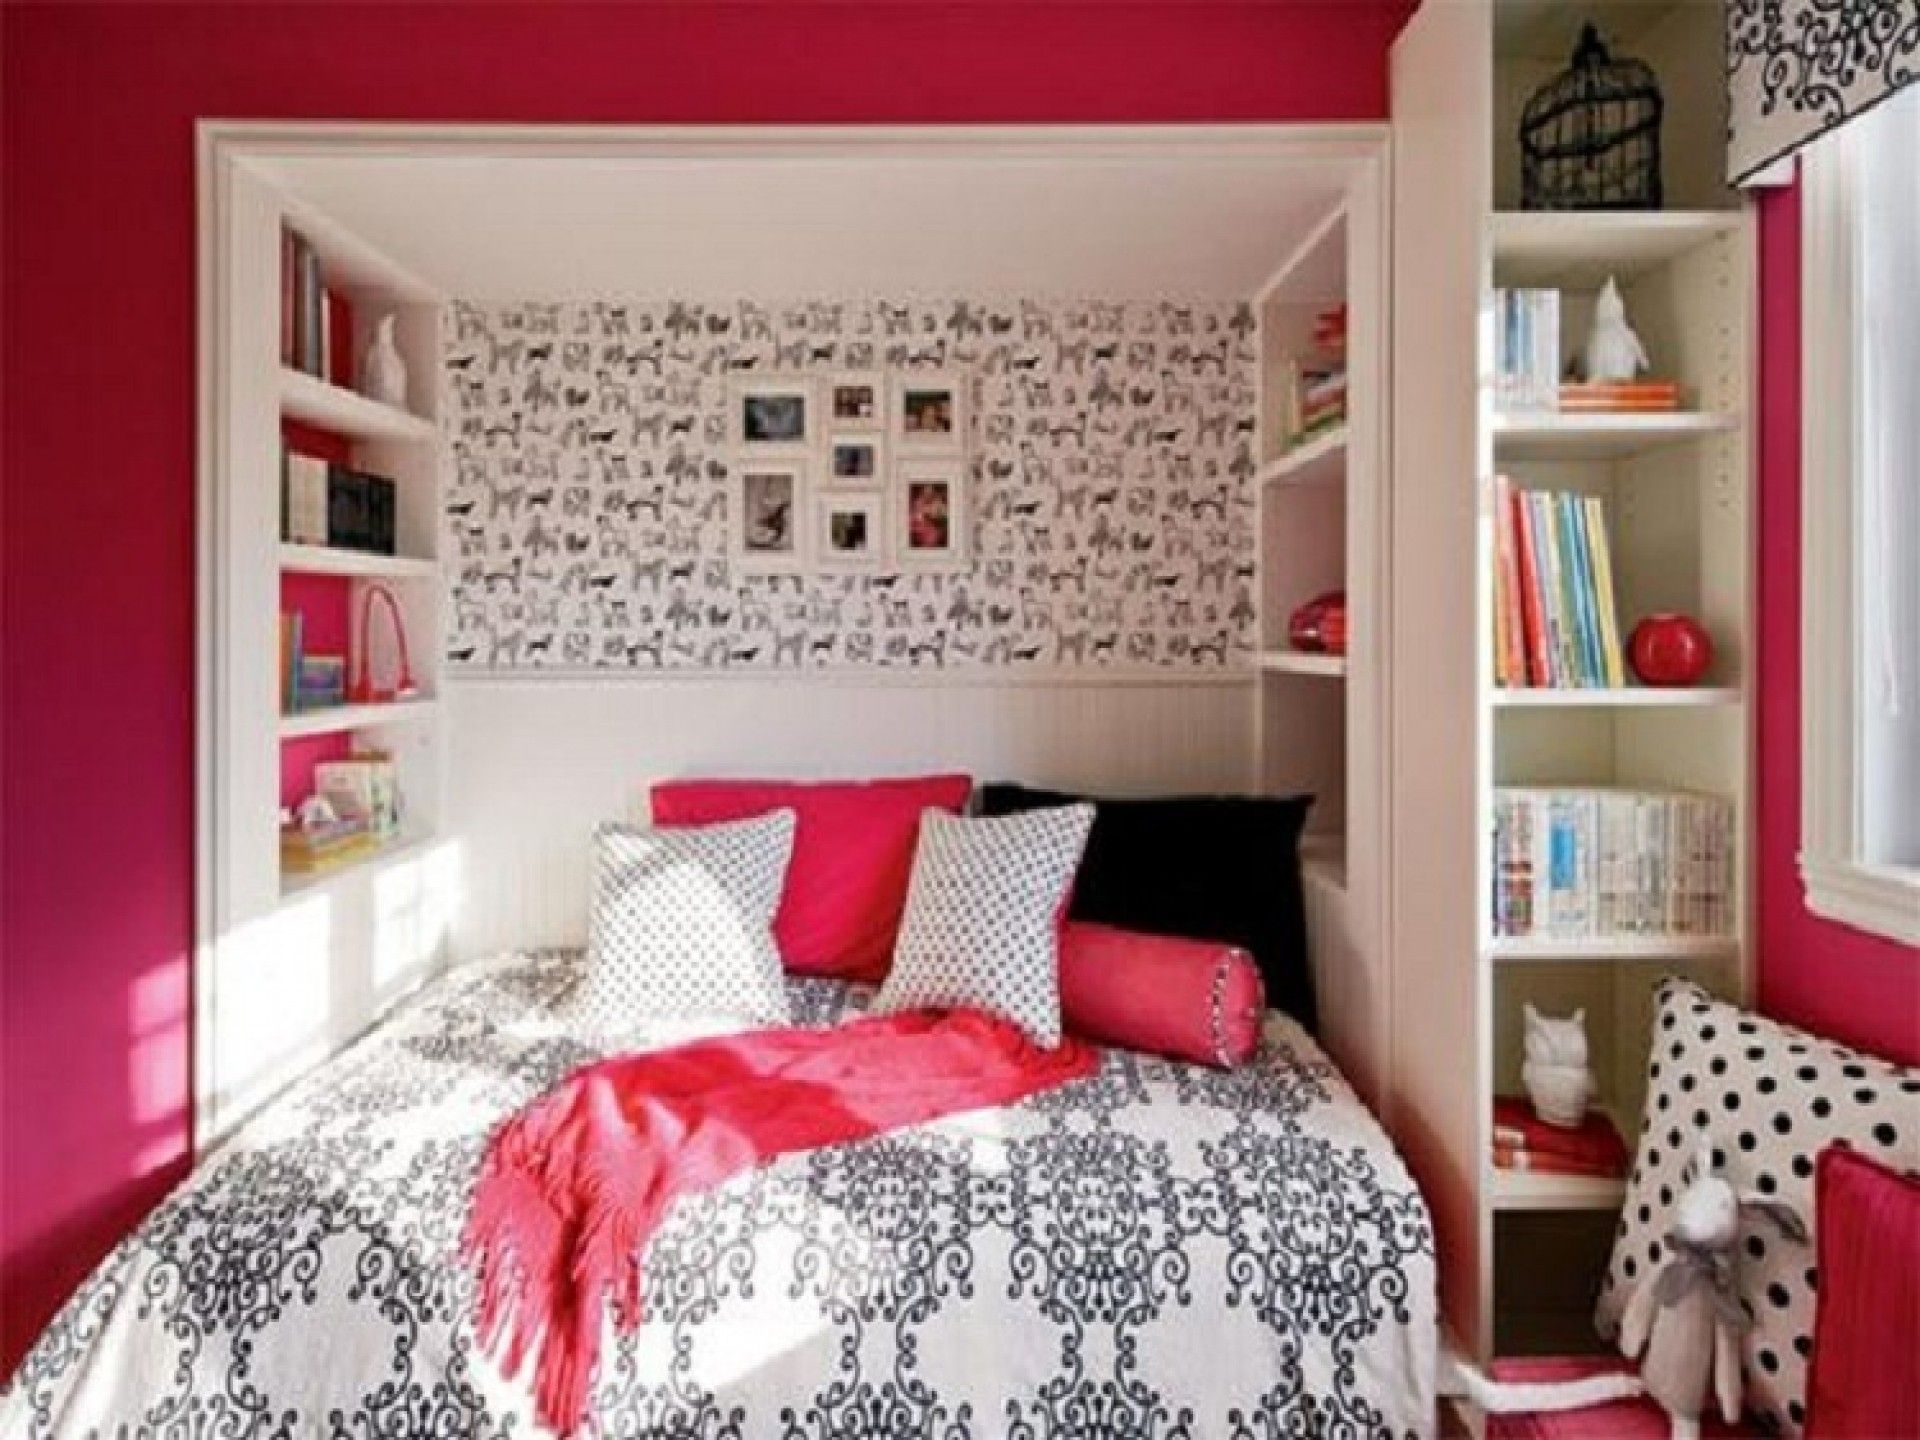 Bedroom Designs For Teenage Girls Marvelous Bedroom Ideas For Teenage Girls With White Wooden